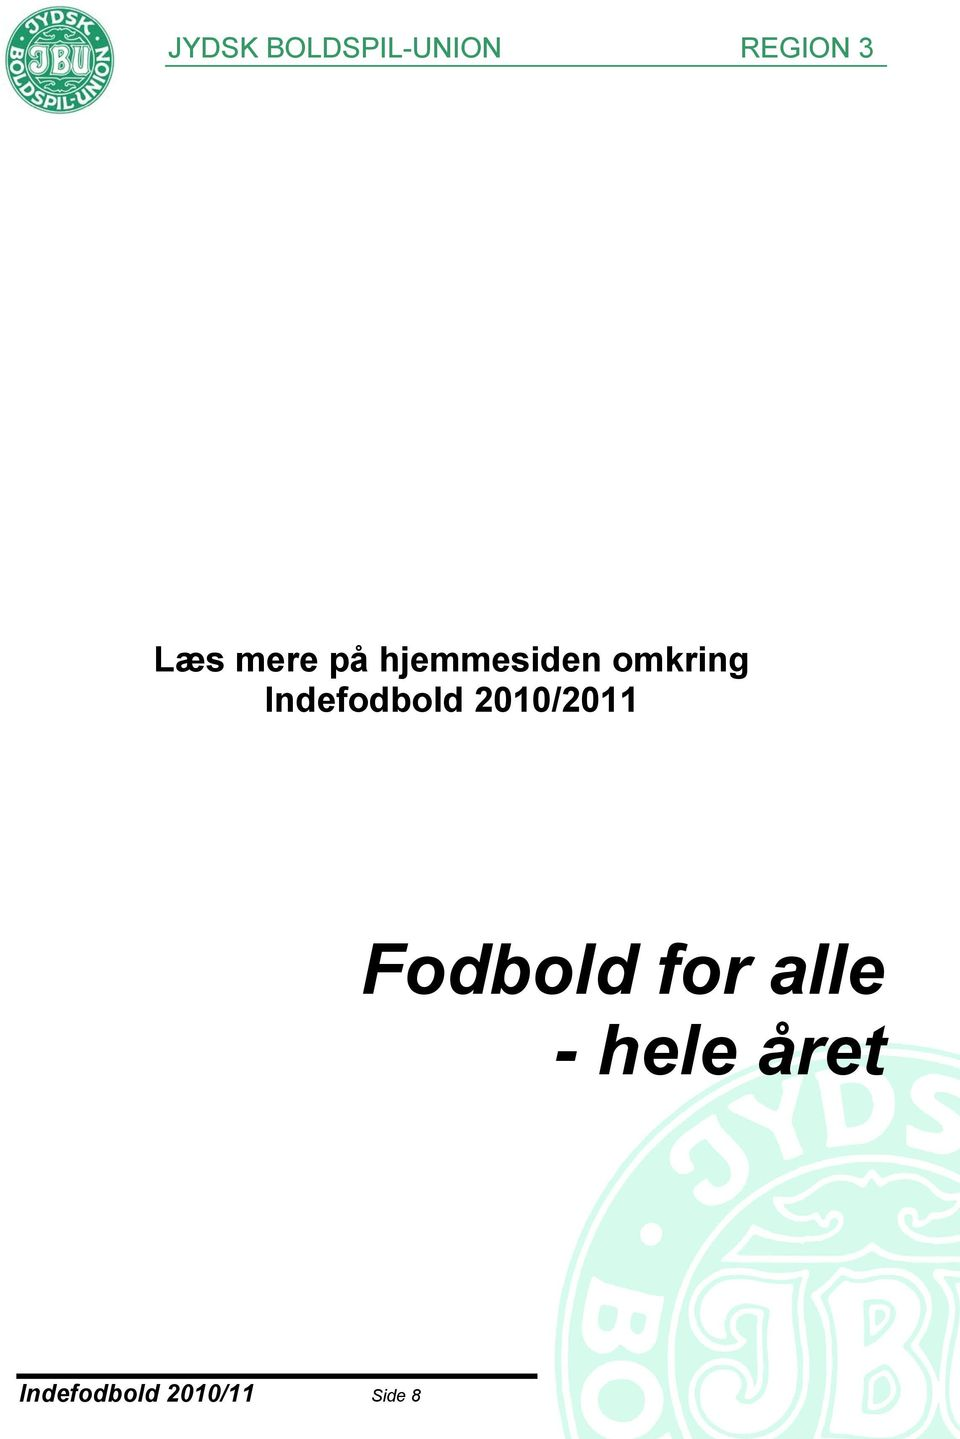 2010/2011 Fodbold for alle